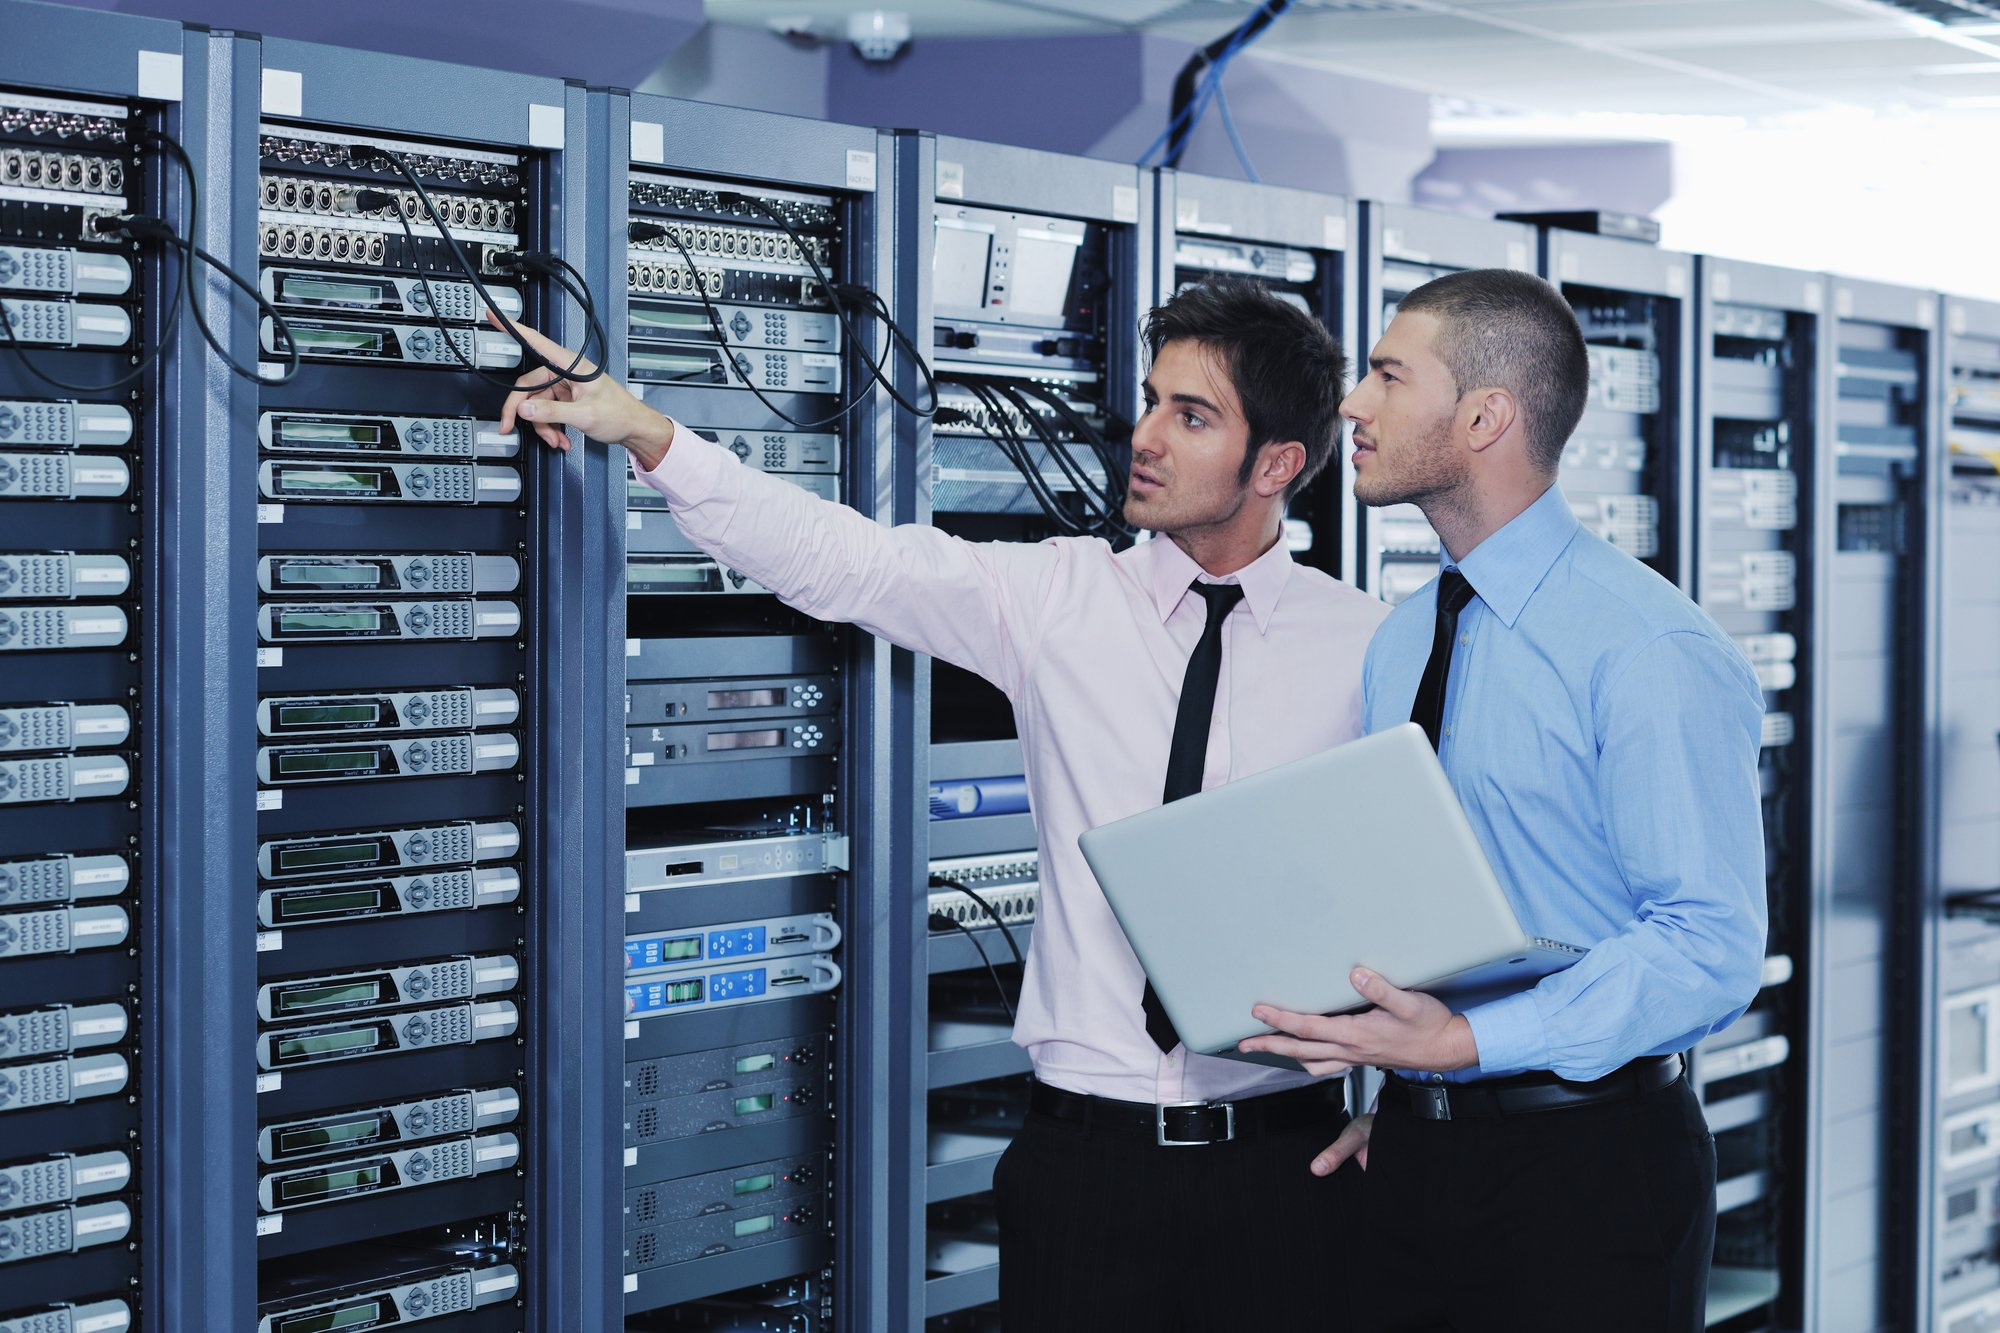 IT consultants working in a server room